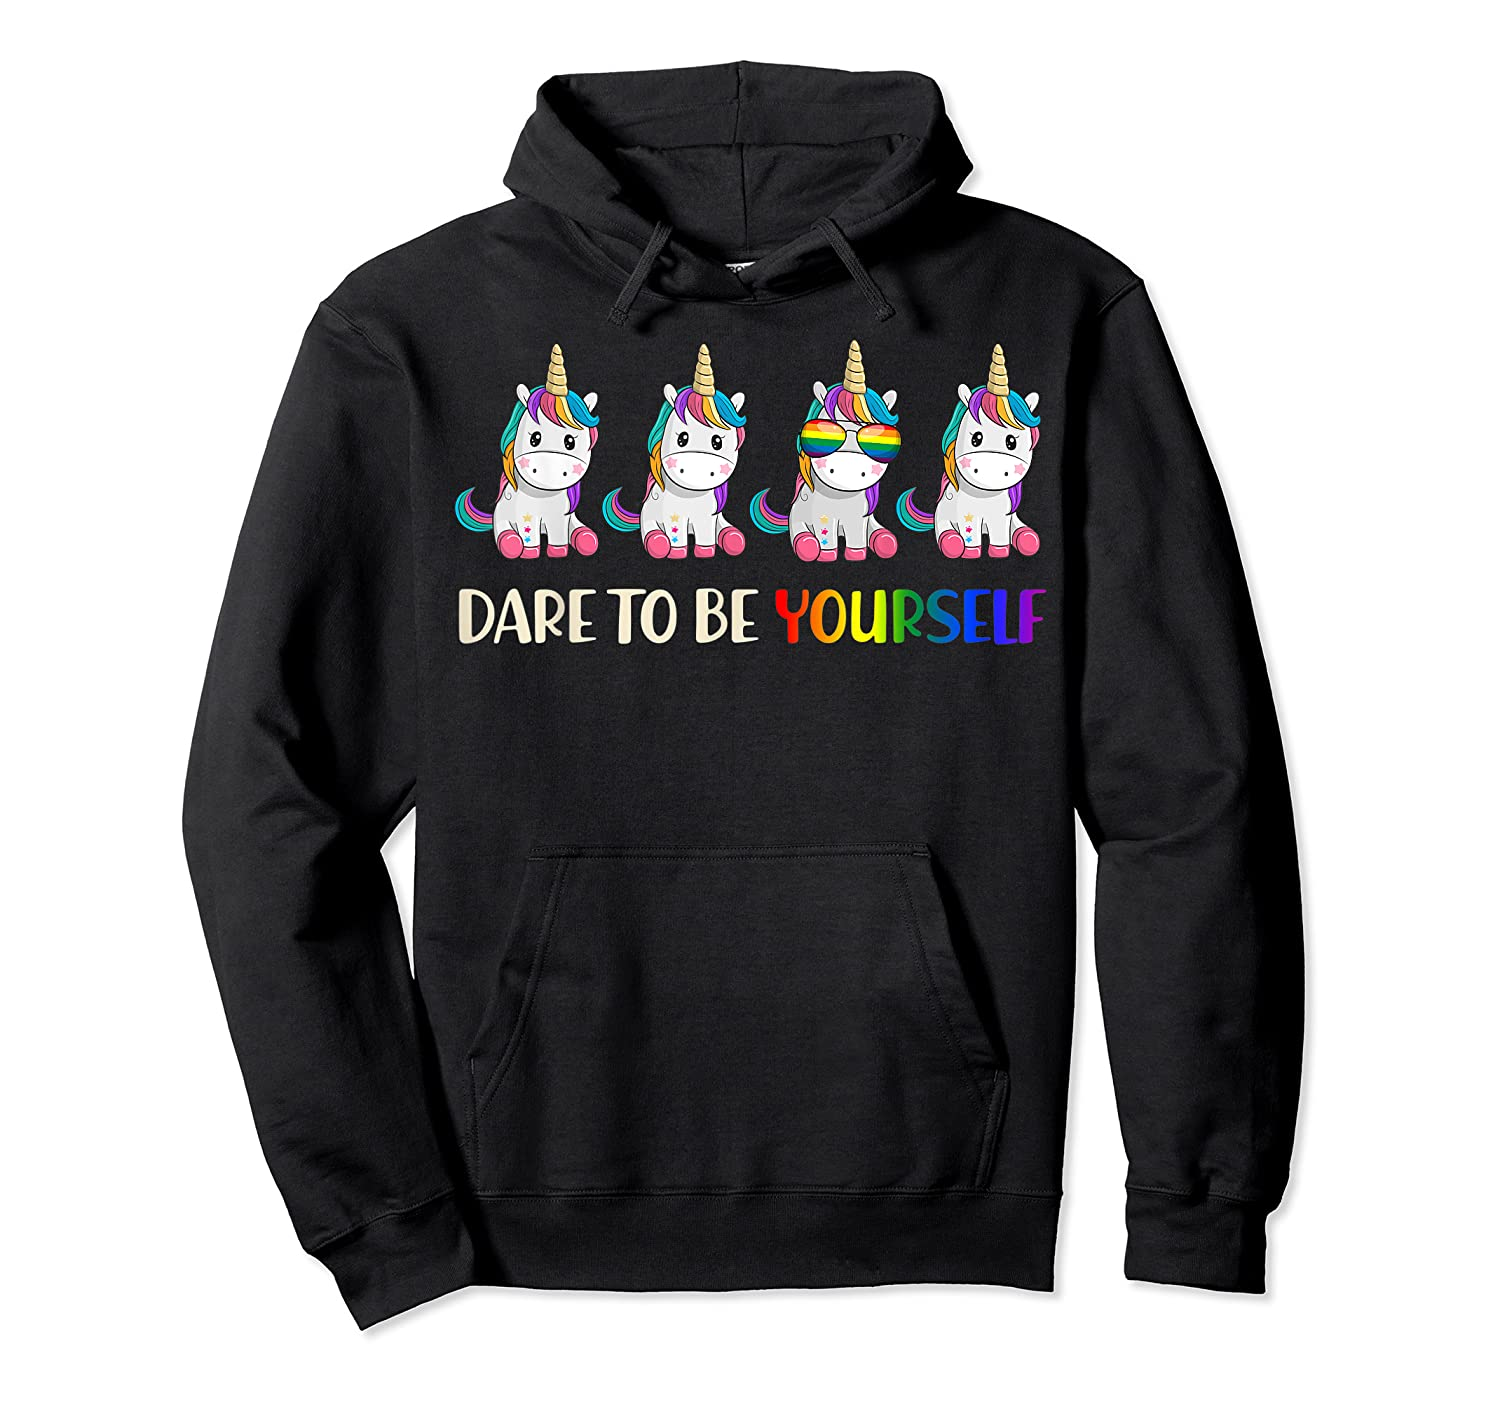 Cute Unicorn Shirt Dare To Be Yourself Lgbt, Gay T-shirt Unisex Pullover Hoodie